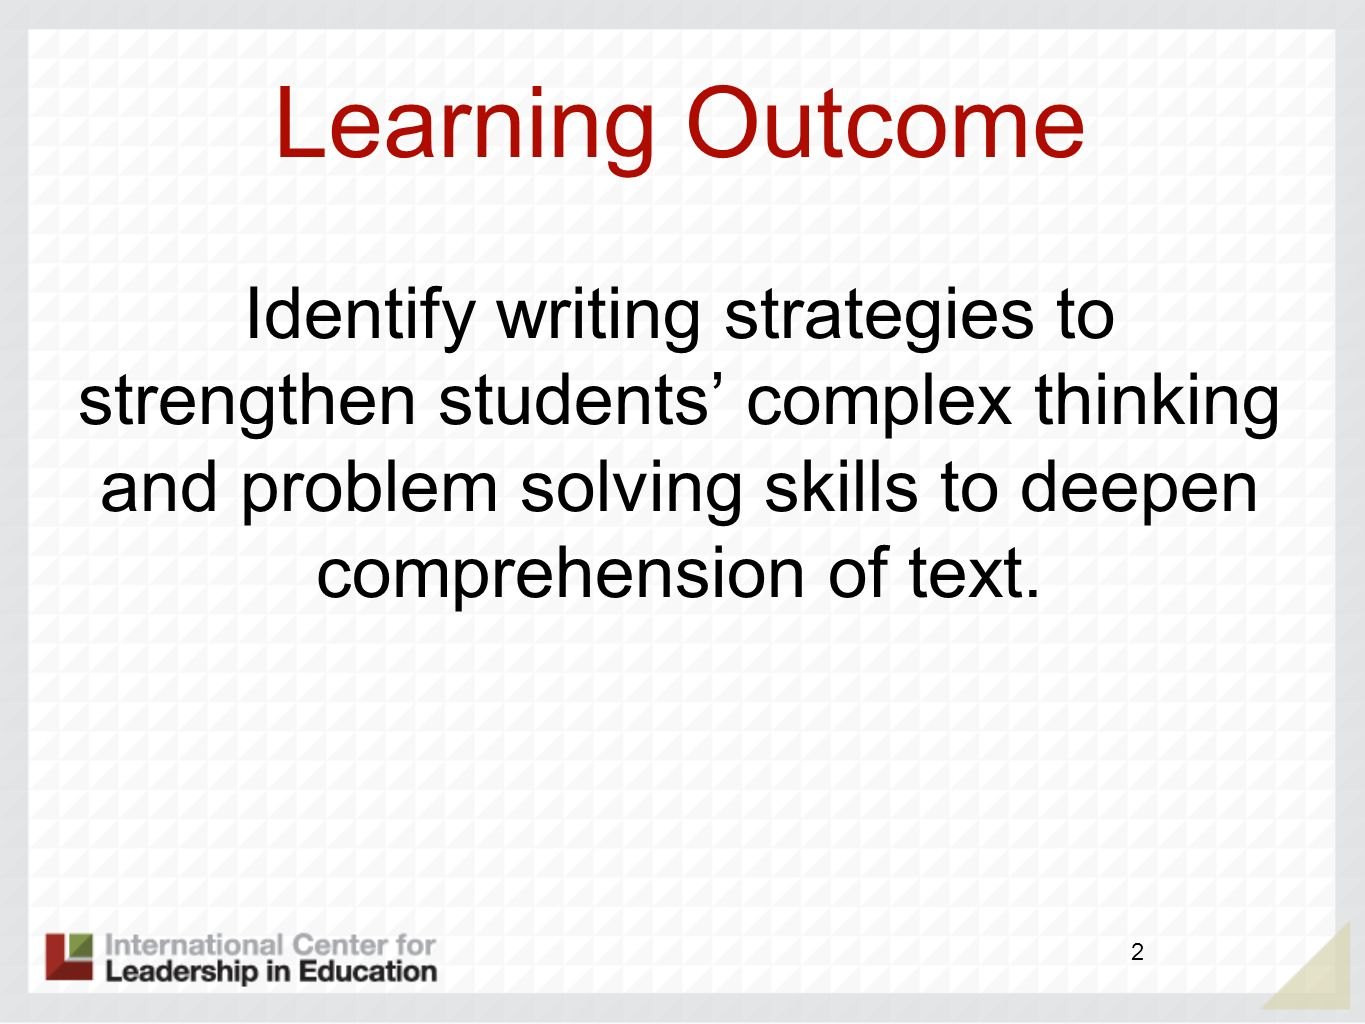 Learning Outcome Identify writing strategies to strengthen students' complex thinking and problem solving skills to deepen comprehension of text.